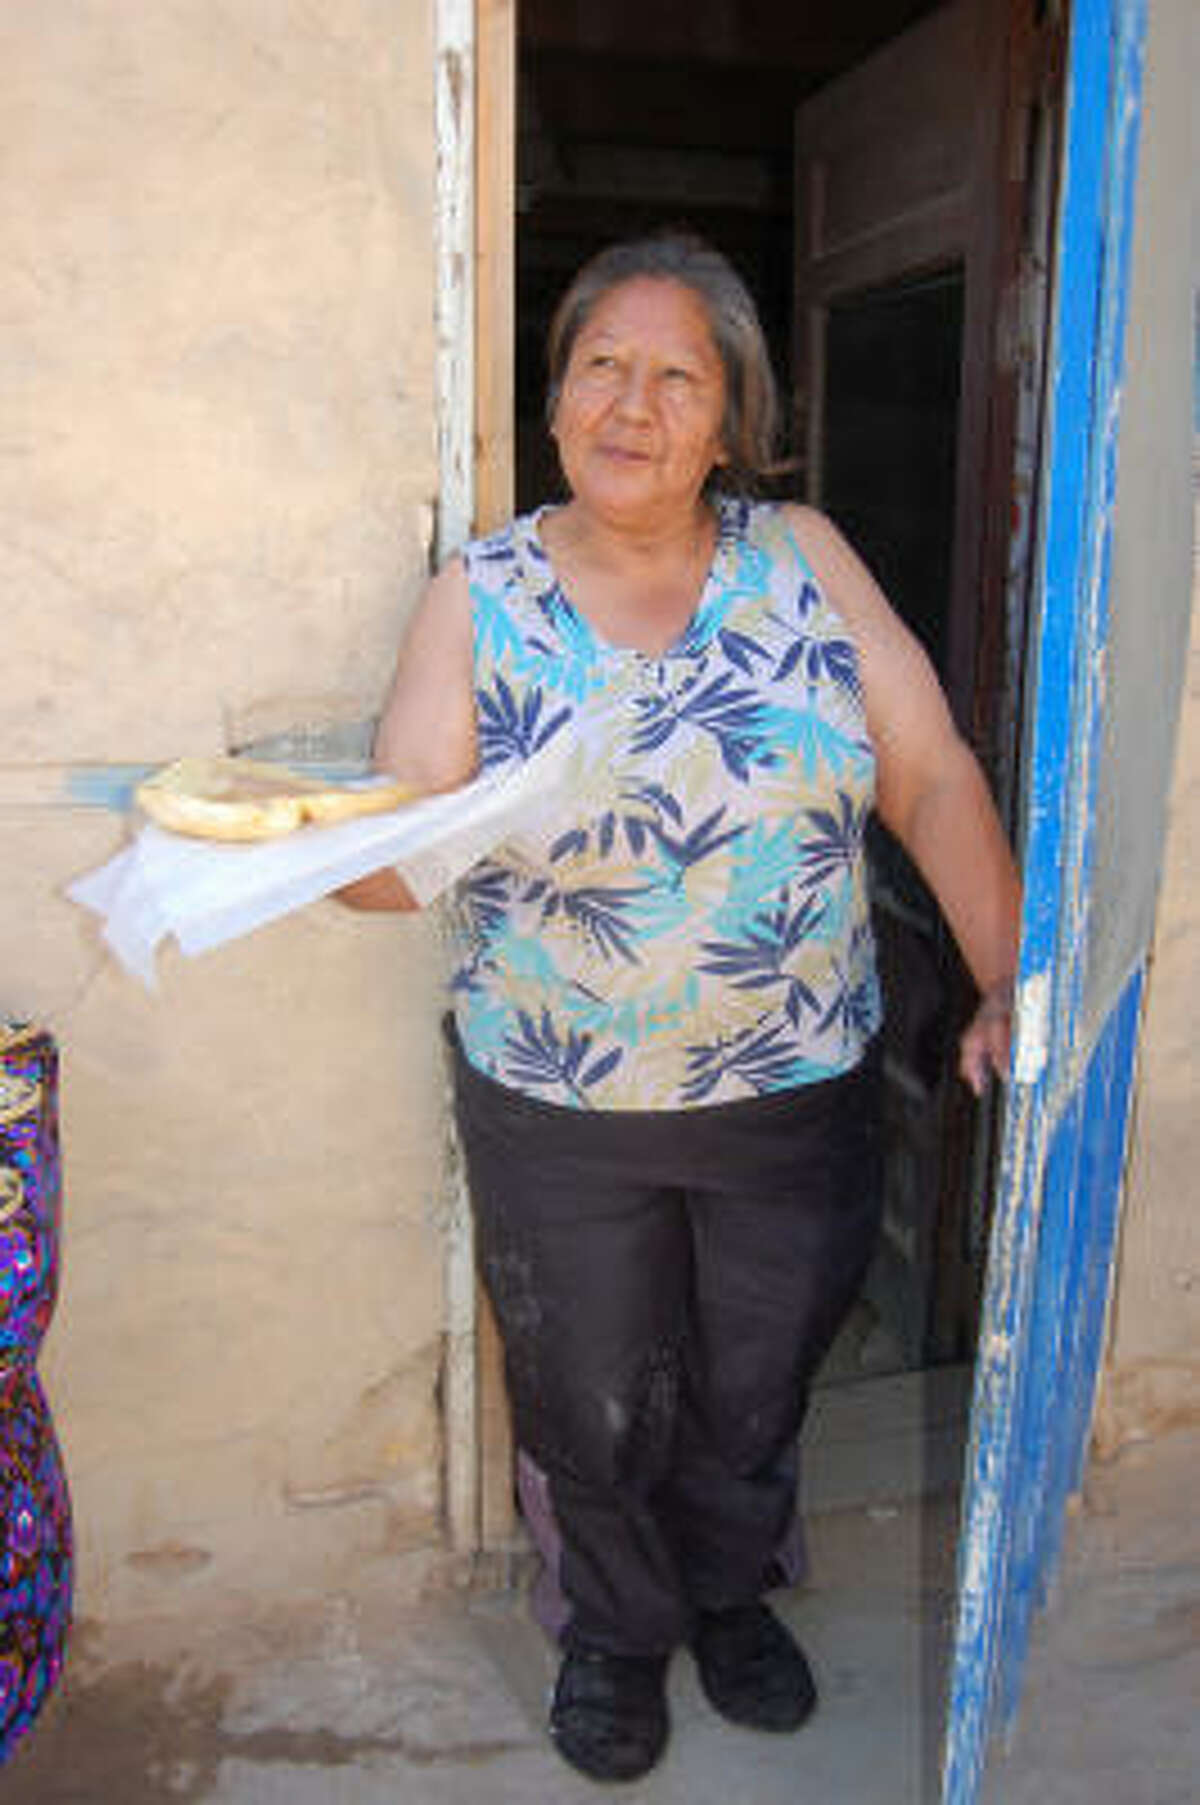 Francesca offers fry bread to visitors from her turquoise screen door in the Acoma Pueblo near Albuquerque, N.M.